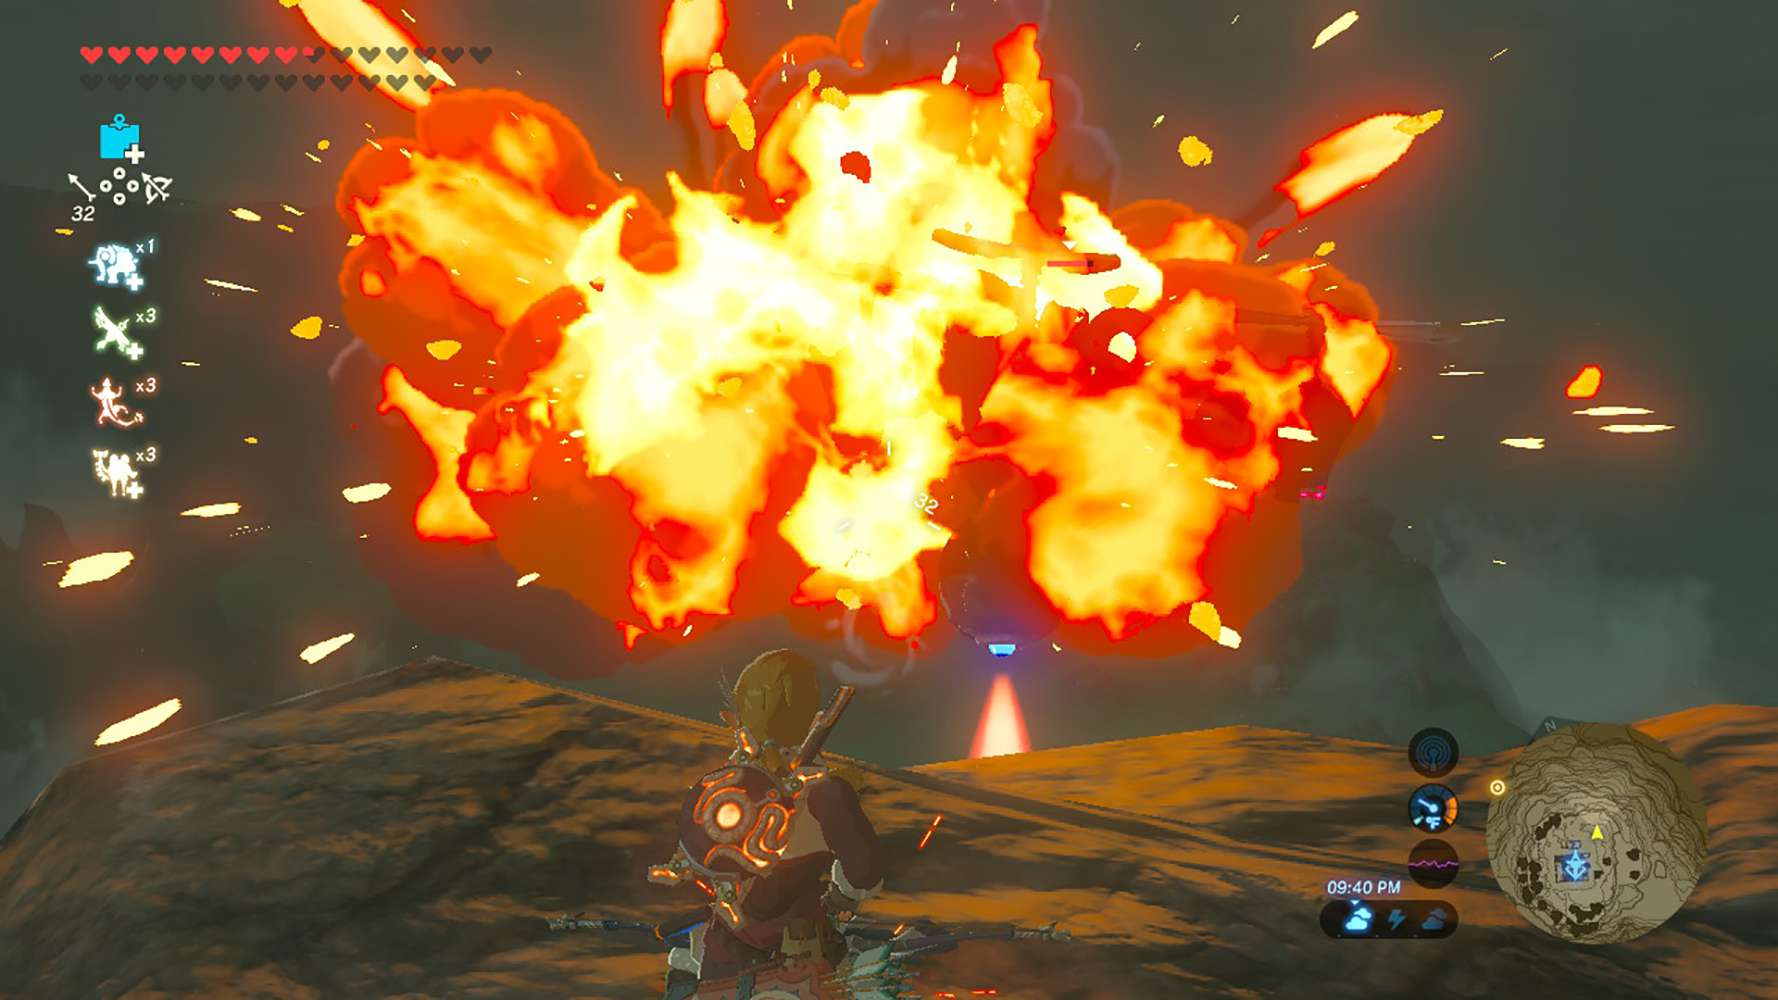 Screenshot from Zelda: Breath of the Wild using a bomb arrow on a Guardian